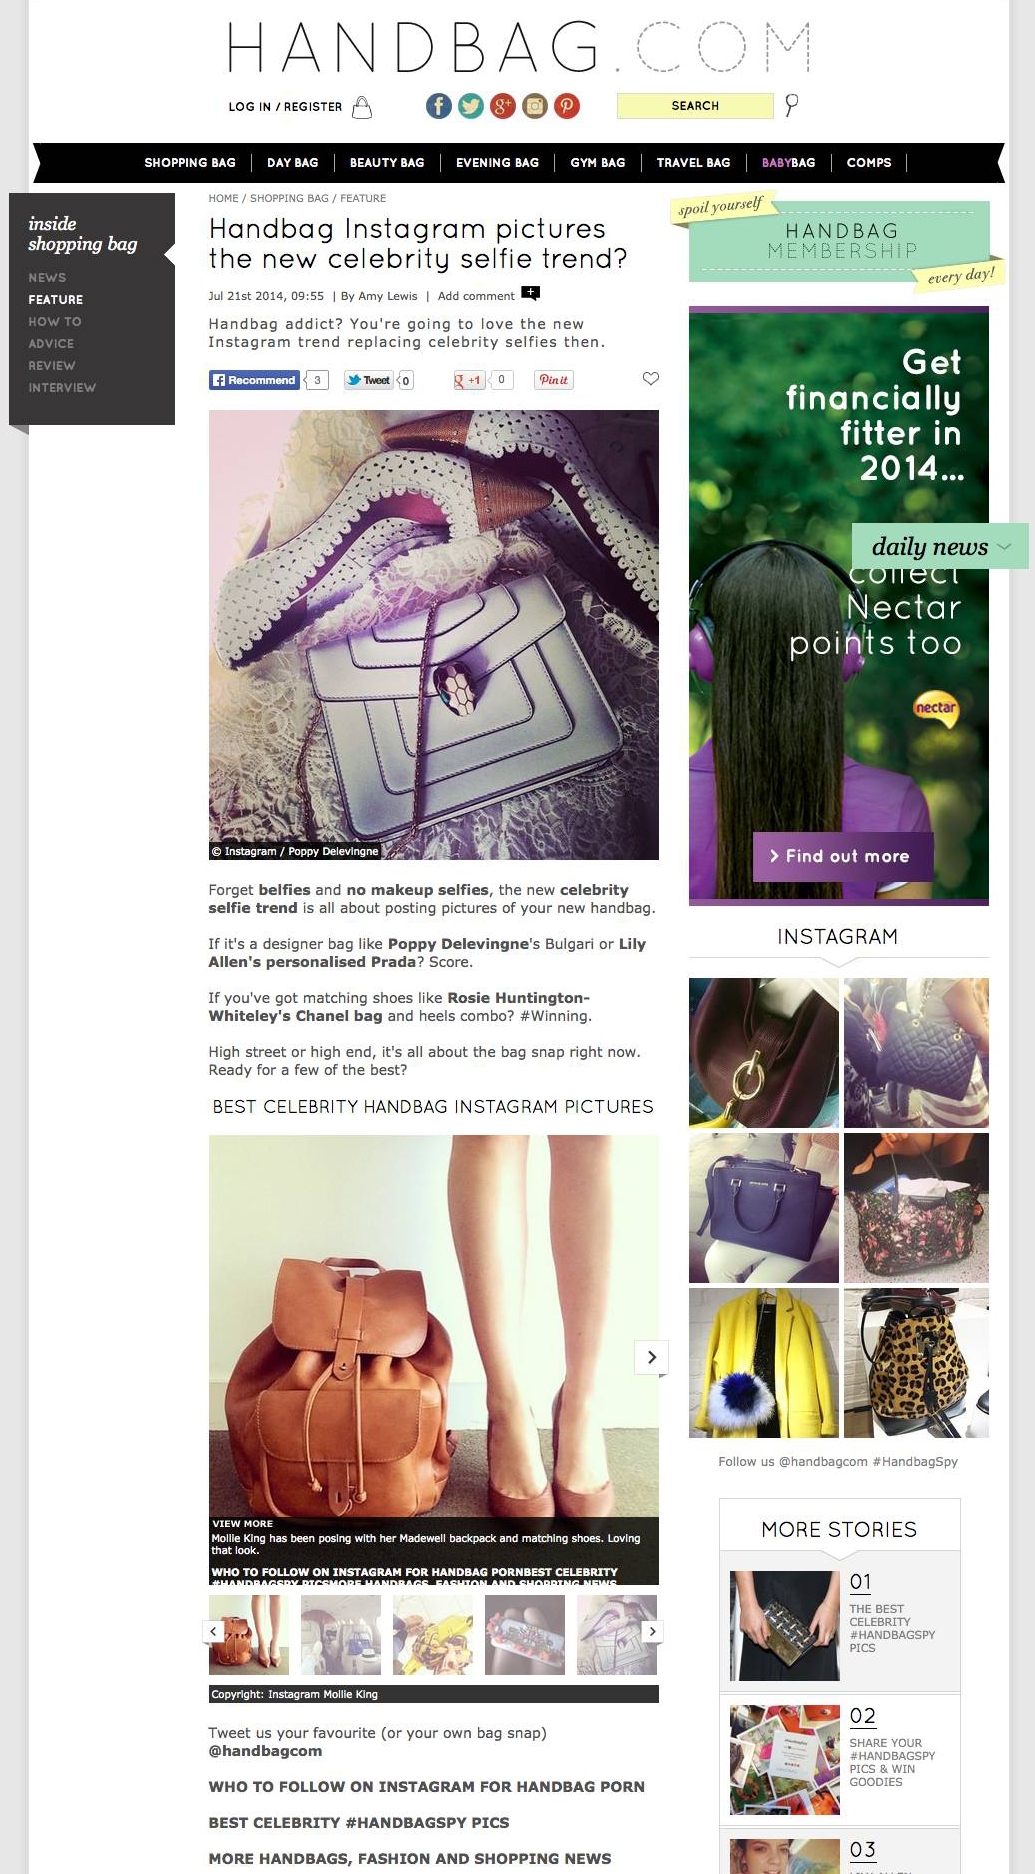 Handbag_Instagram_pictures_the_new_celebrity_selfie_trend_-_Shopping_Bag_Feature_-_handbag.com_-_2014-07-30_11.09.21.png